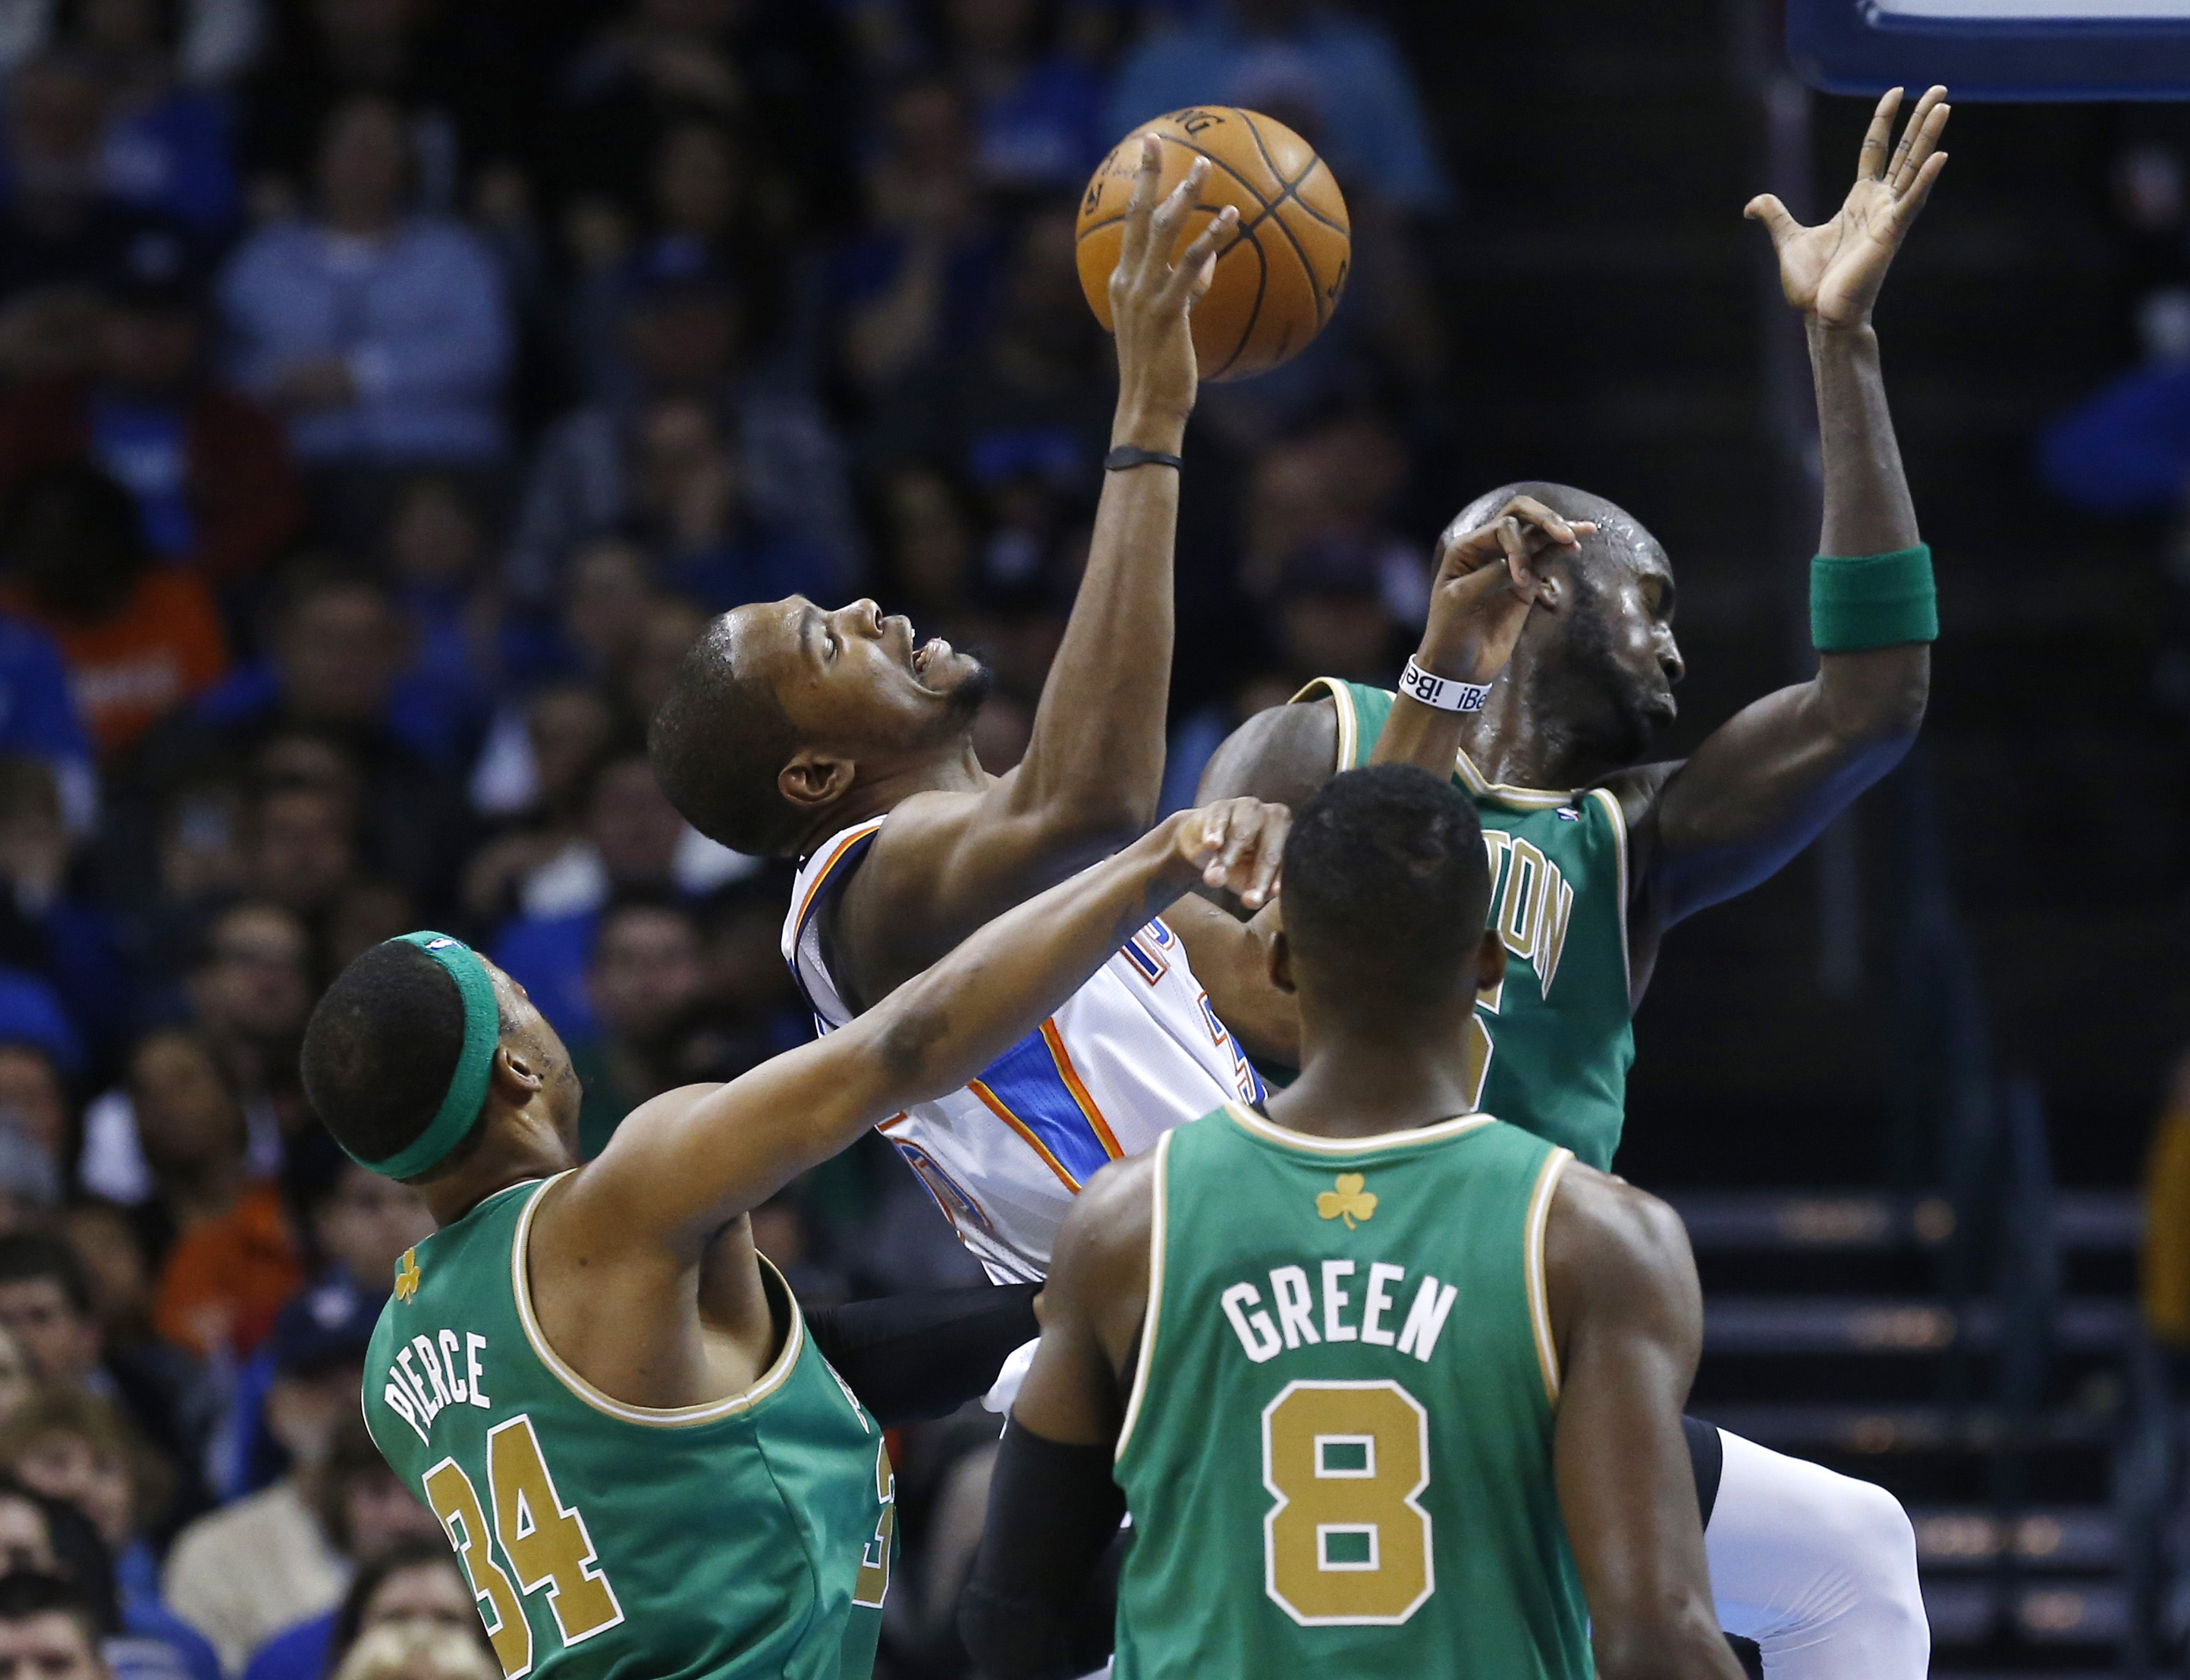 Celtics Thunder Basketball.JPEG-03de1.jpg